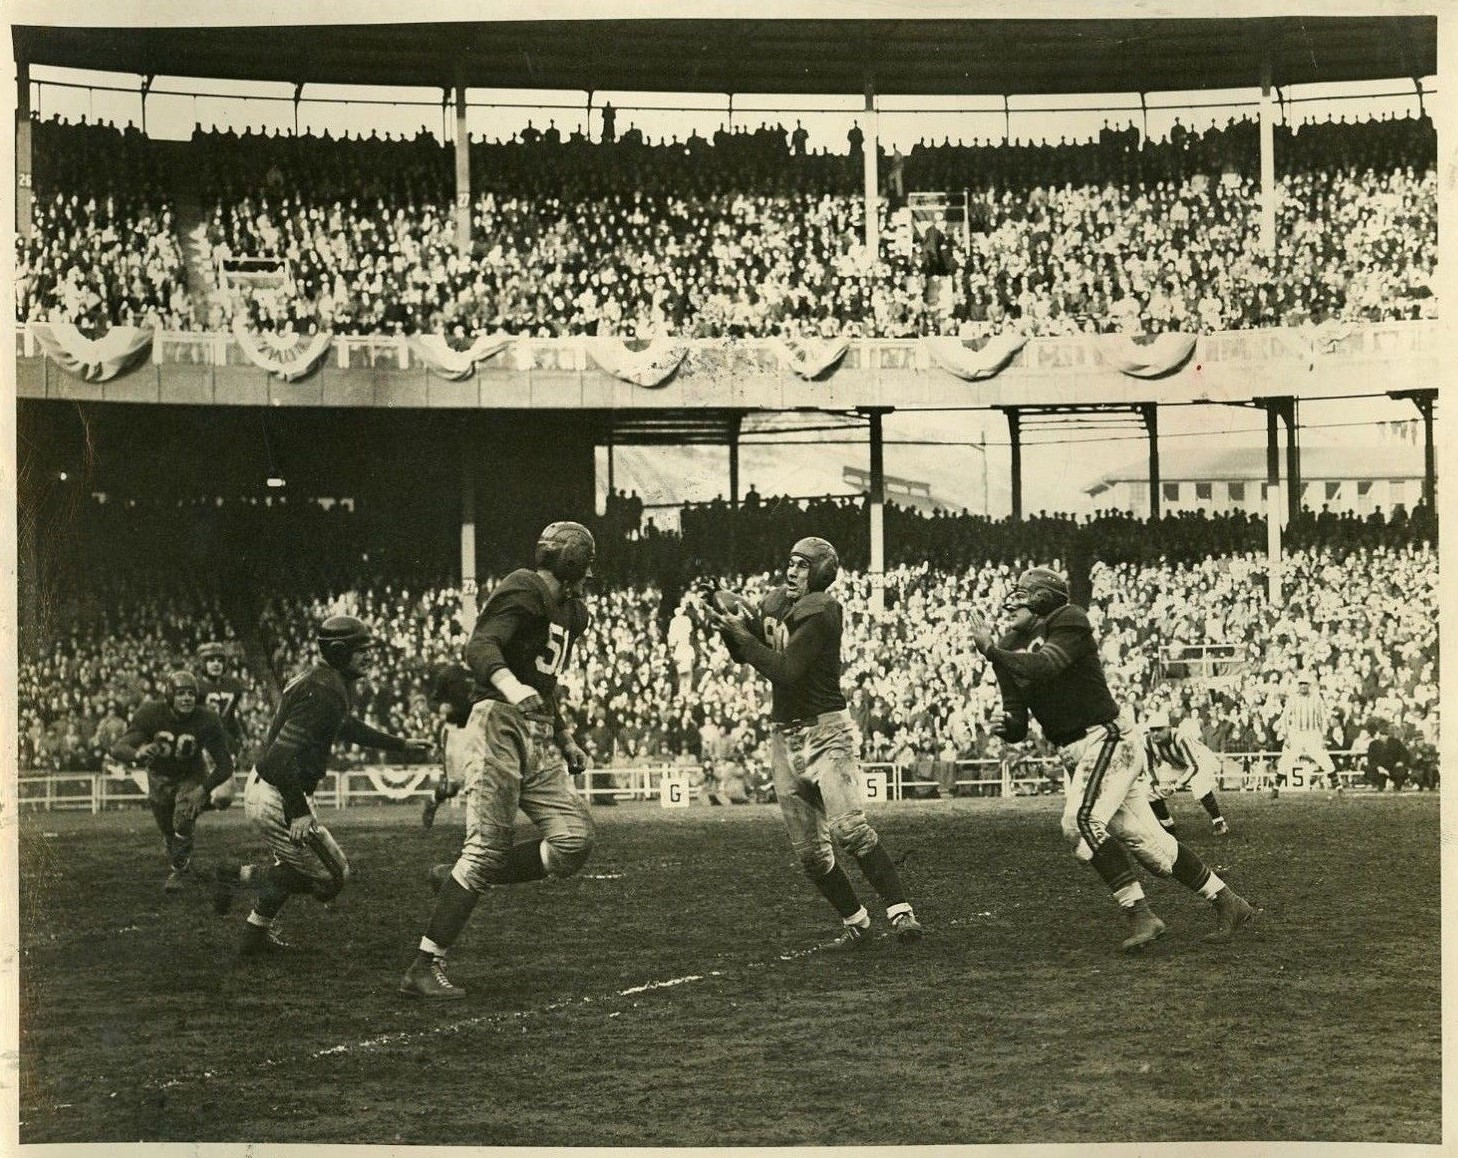 Chester Gladchuck and Jim Poole, New York Giants (December 14, 1946)